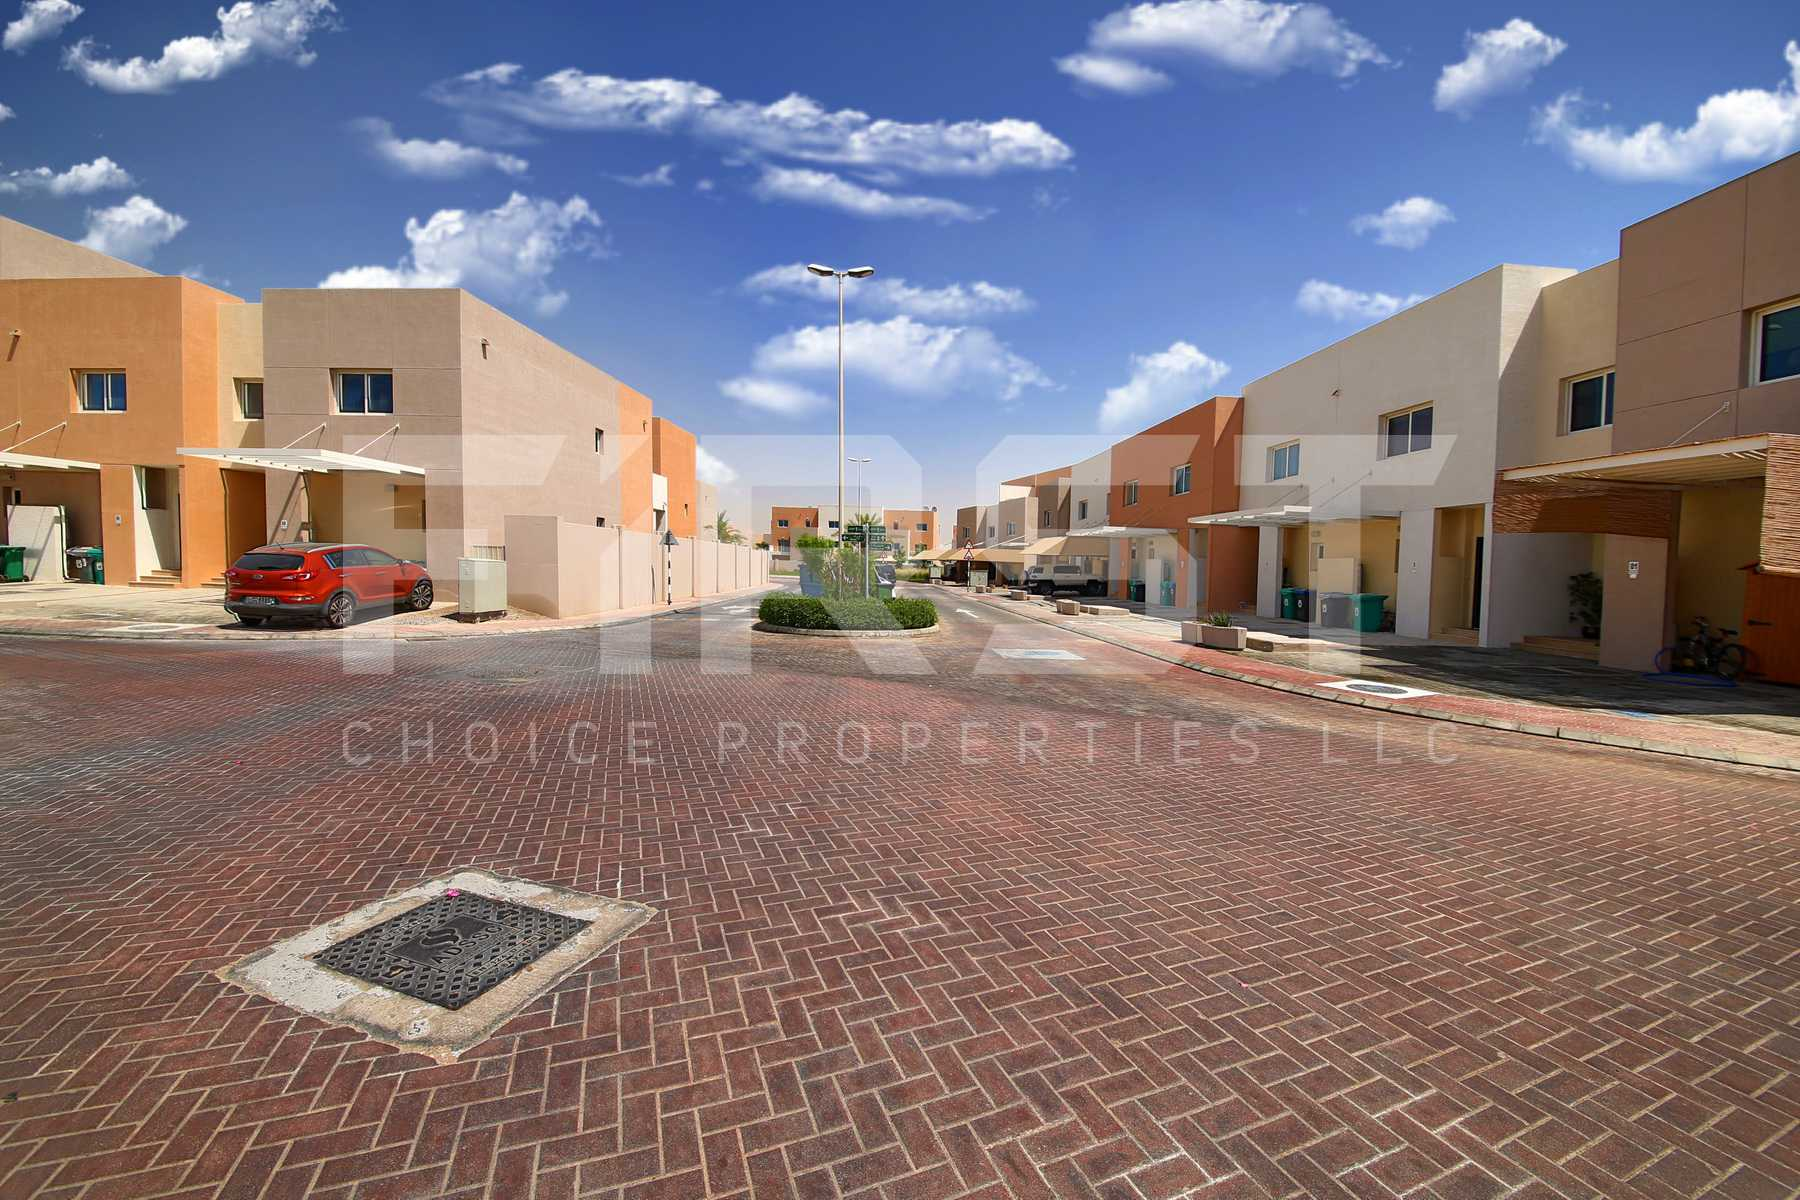 External Photo of Contemporary Village Al Reef Villas Al Reef Abu Dhabi UAE (22).jpg